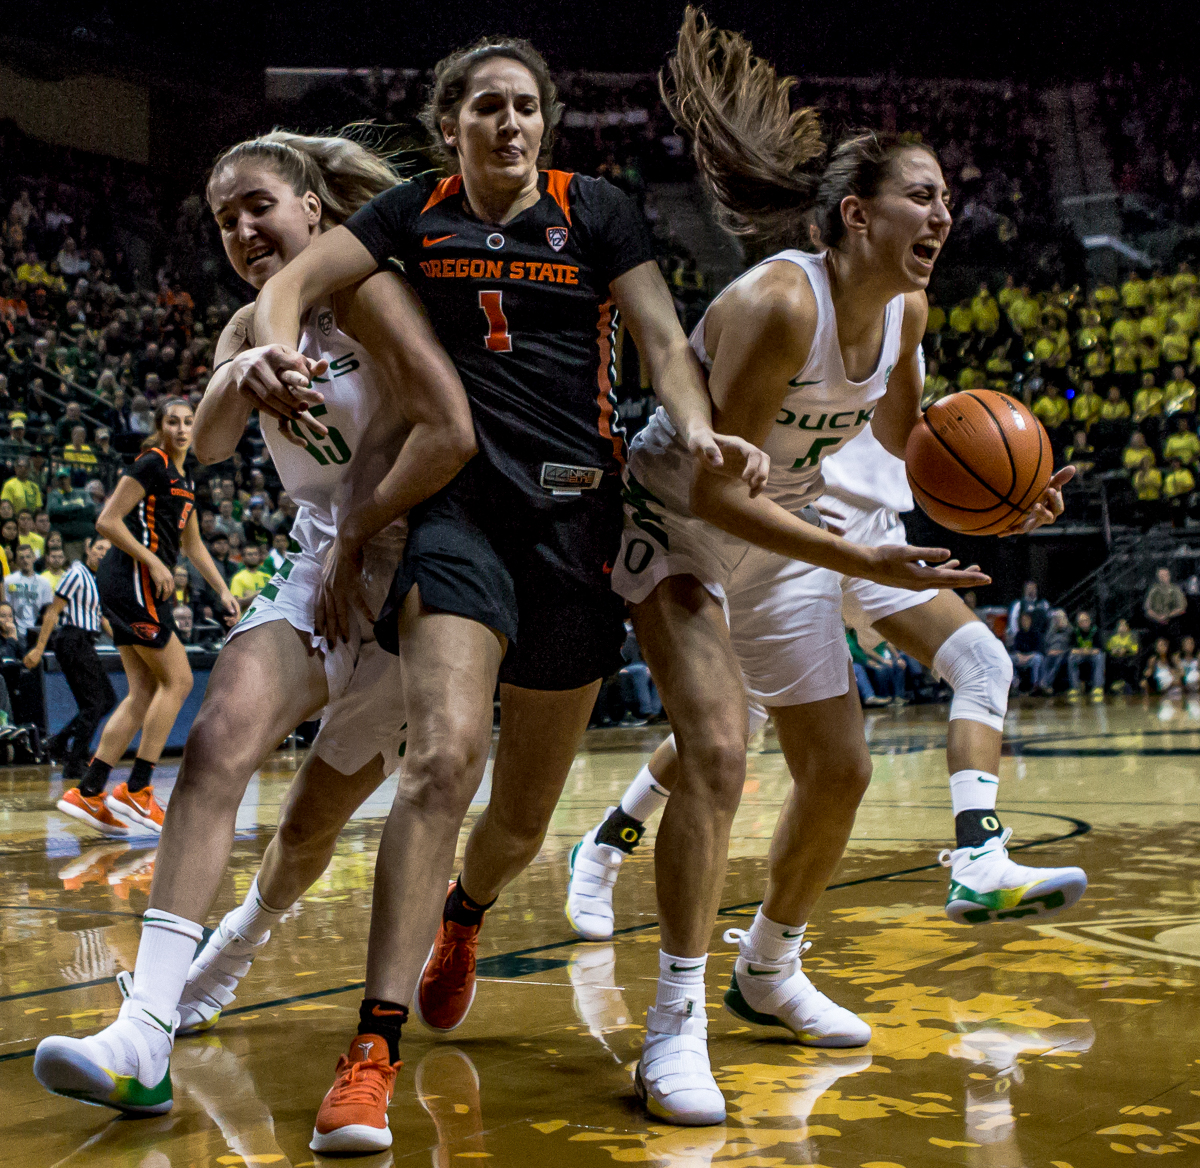 Oregon guard Maite Cazorla (#5) gains control of an Oregon State rebound. The Oregon Ducks defeated the Oregon State Beavers 75-63 on Sunday afternoon in front of a crowd of 7,249 at Matthew Knight Arena. The Ducks and Beavers split the two game Civil War with the Beavers defeating the Ducks on Friday night in Corvallis. The Ducks had four players in double digits: Satou Sabally with 21 points, Maite Cazorla with 16, Sabrina Ionescu with 15, and Mallory McGwire with 14. The Ducks shot 48.4% from the floor compared to the Beavers 37.3%. The Ducks are now 7-1 in conference play. Photo by Ben Lonergan, Oregon News Lab